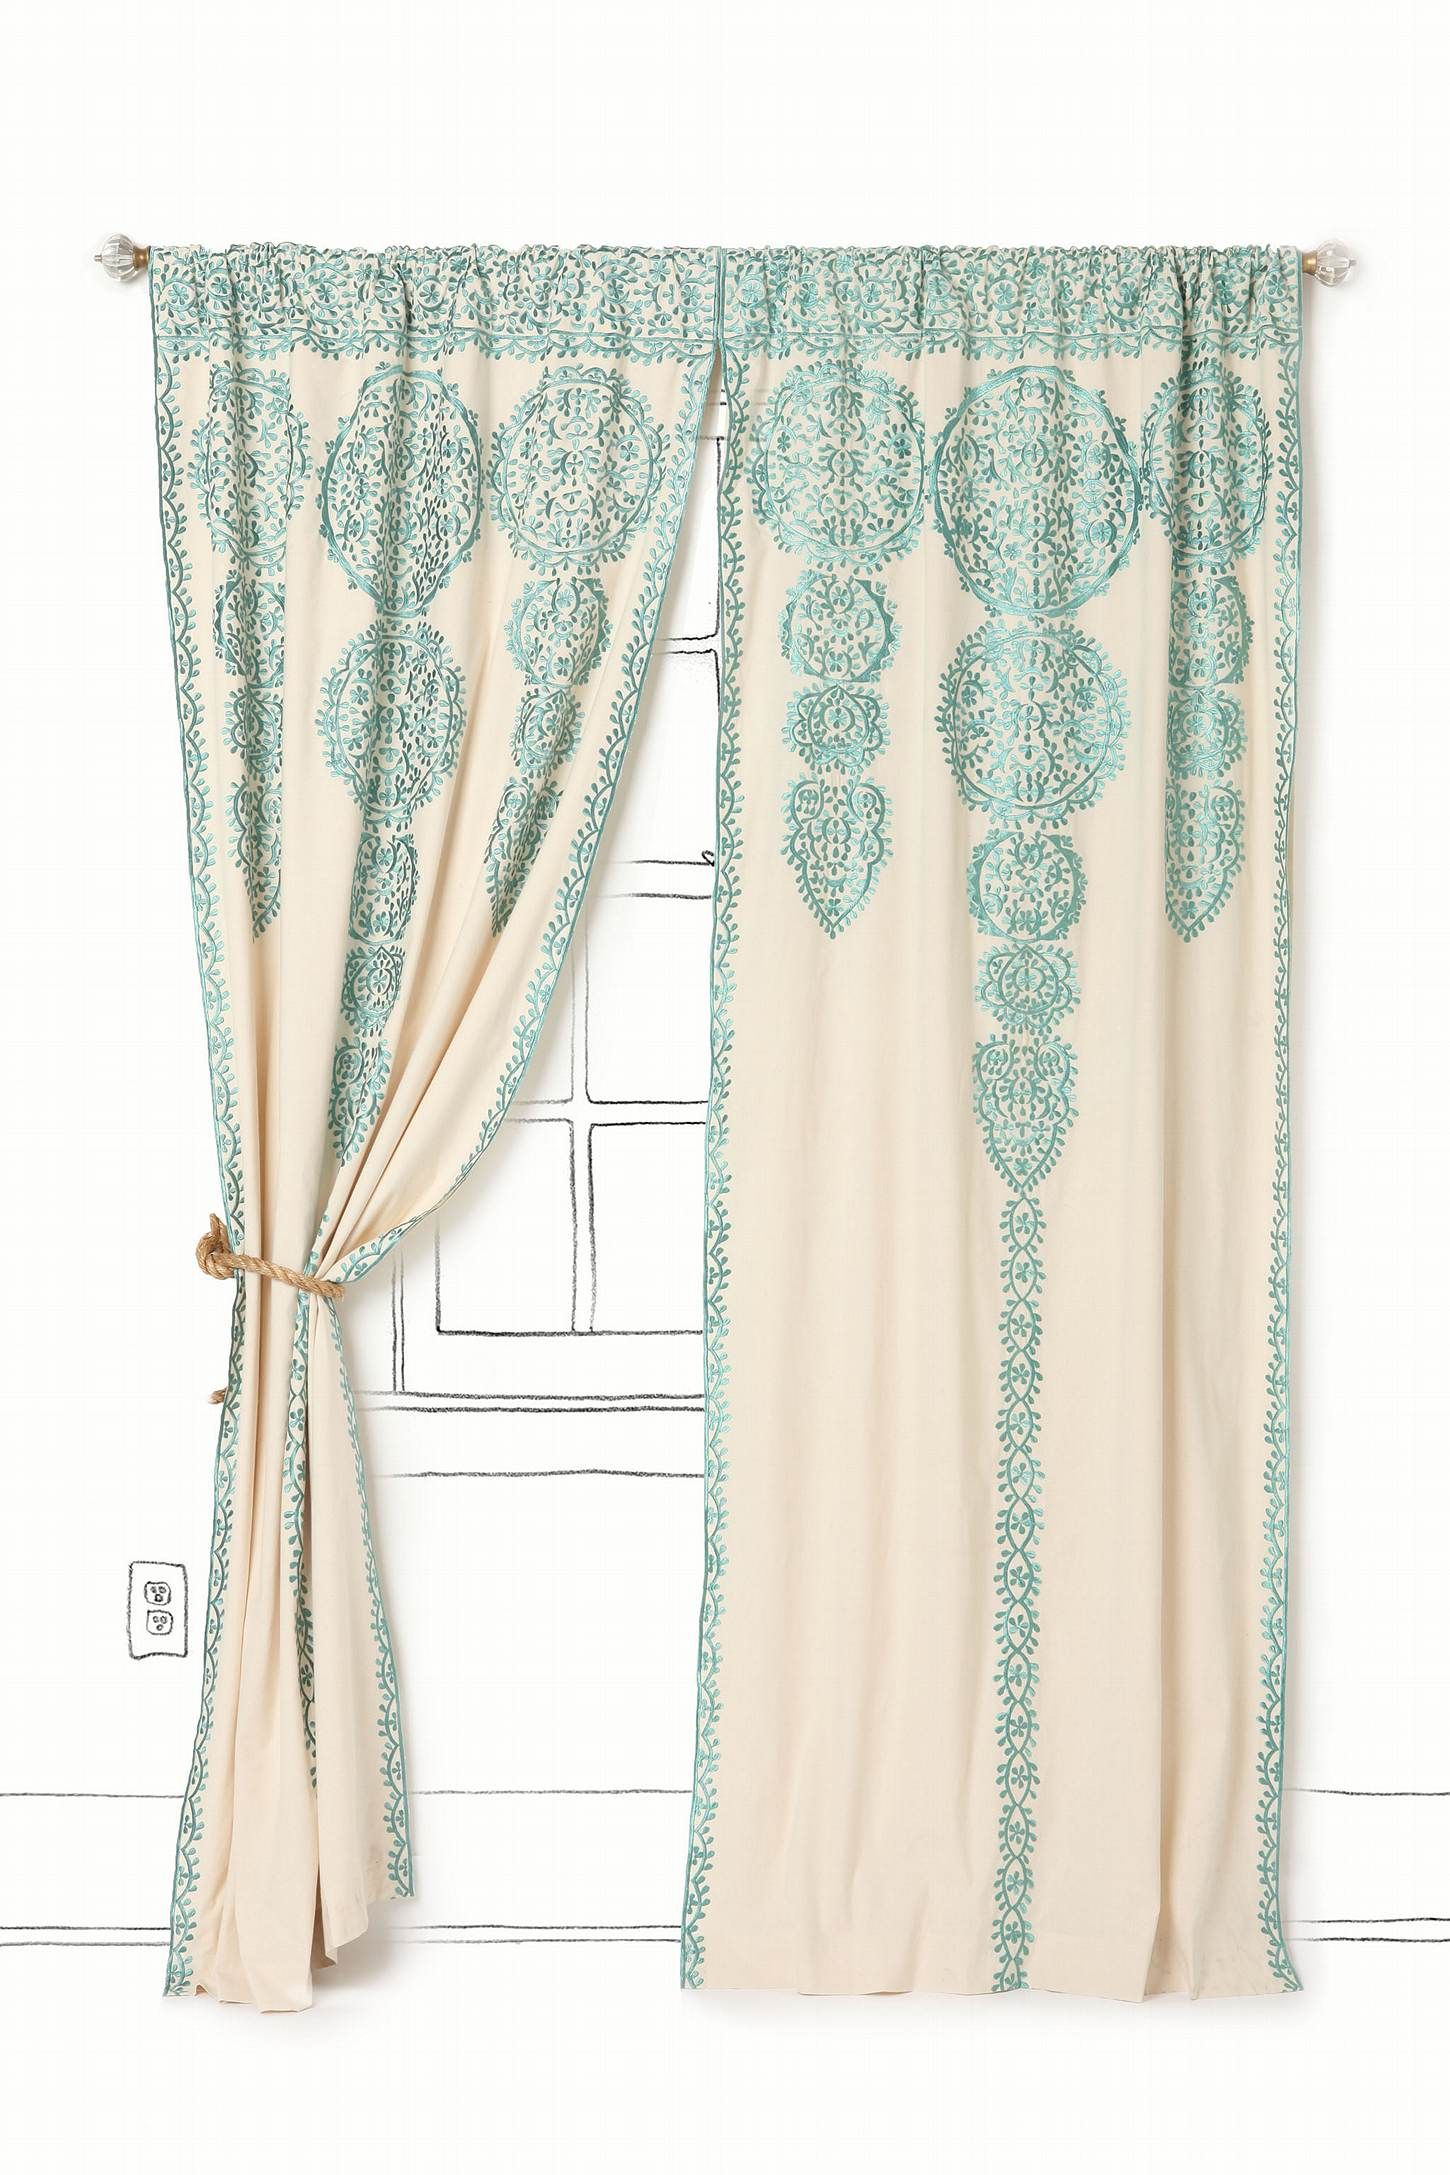 image moroccan pair for popular and thermal tfile teal blackout insulated curtain awesome curtains uncategorized moroccanstyle panel styles